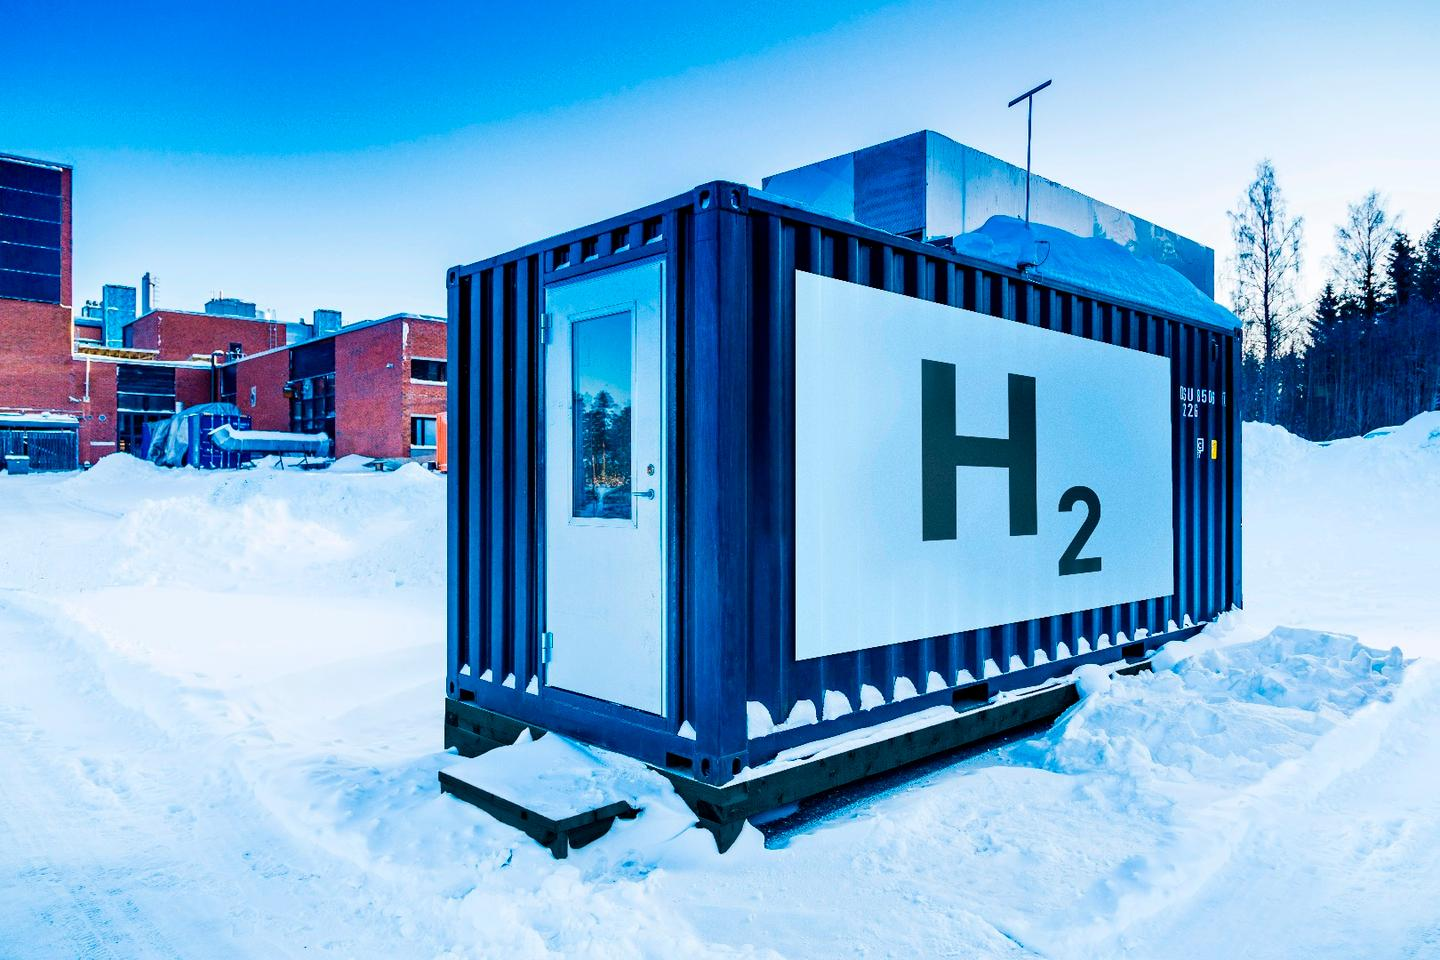 Hydrogen storage for the Ineratec system designed to convert CO2 from the air into liquid fuels